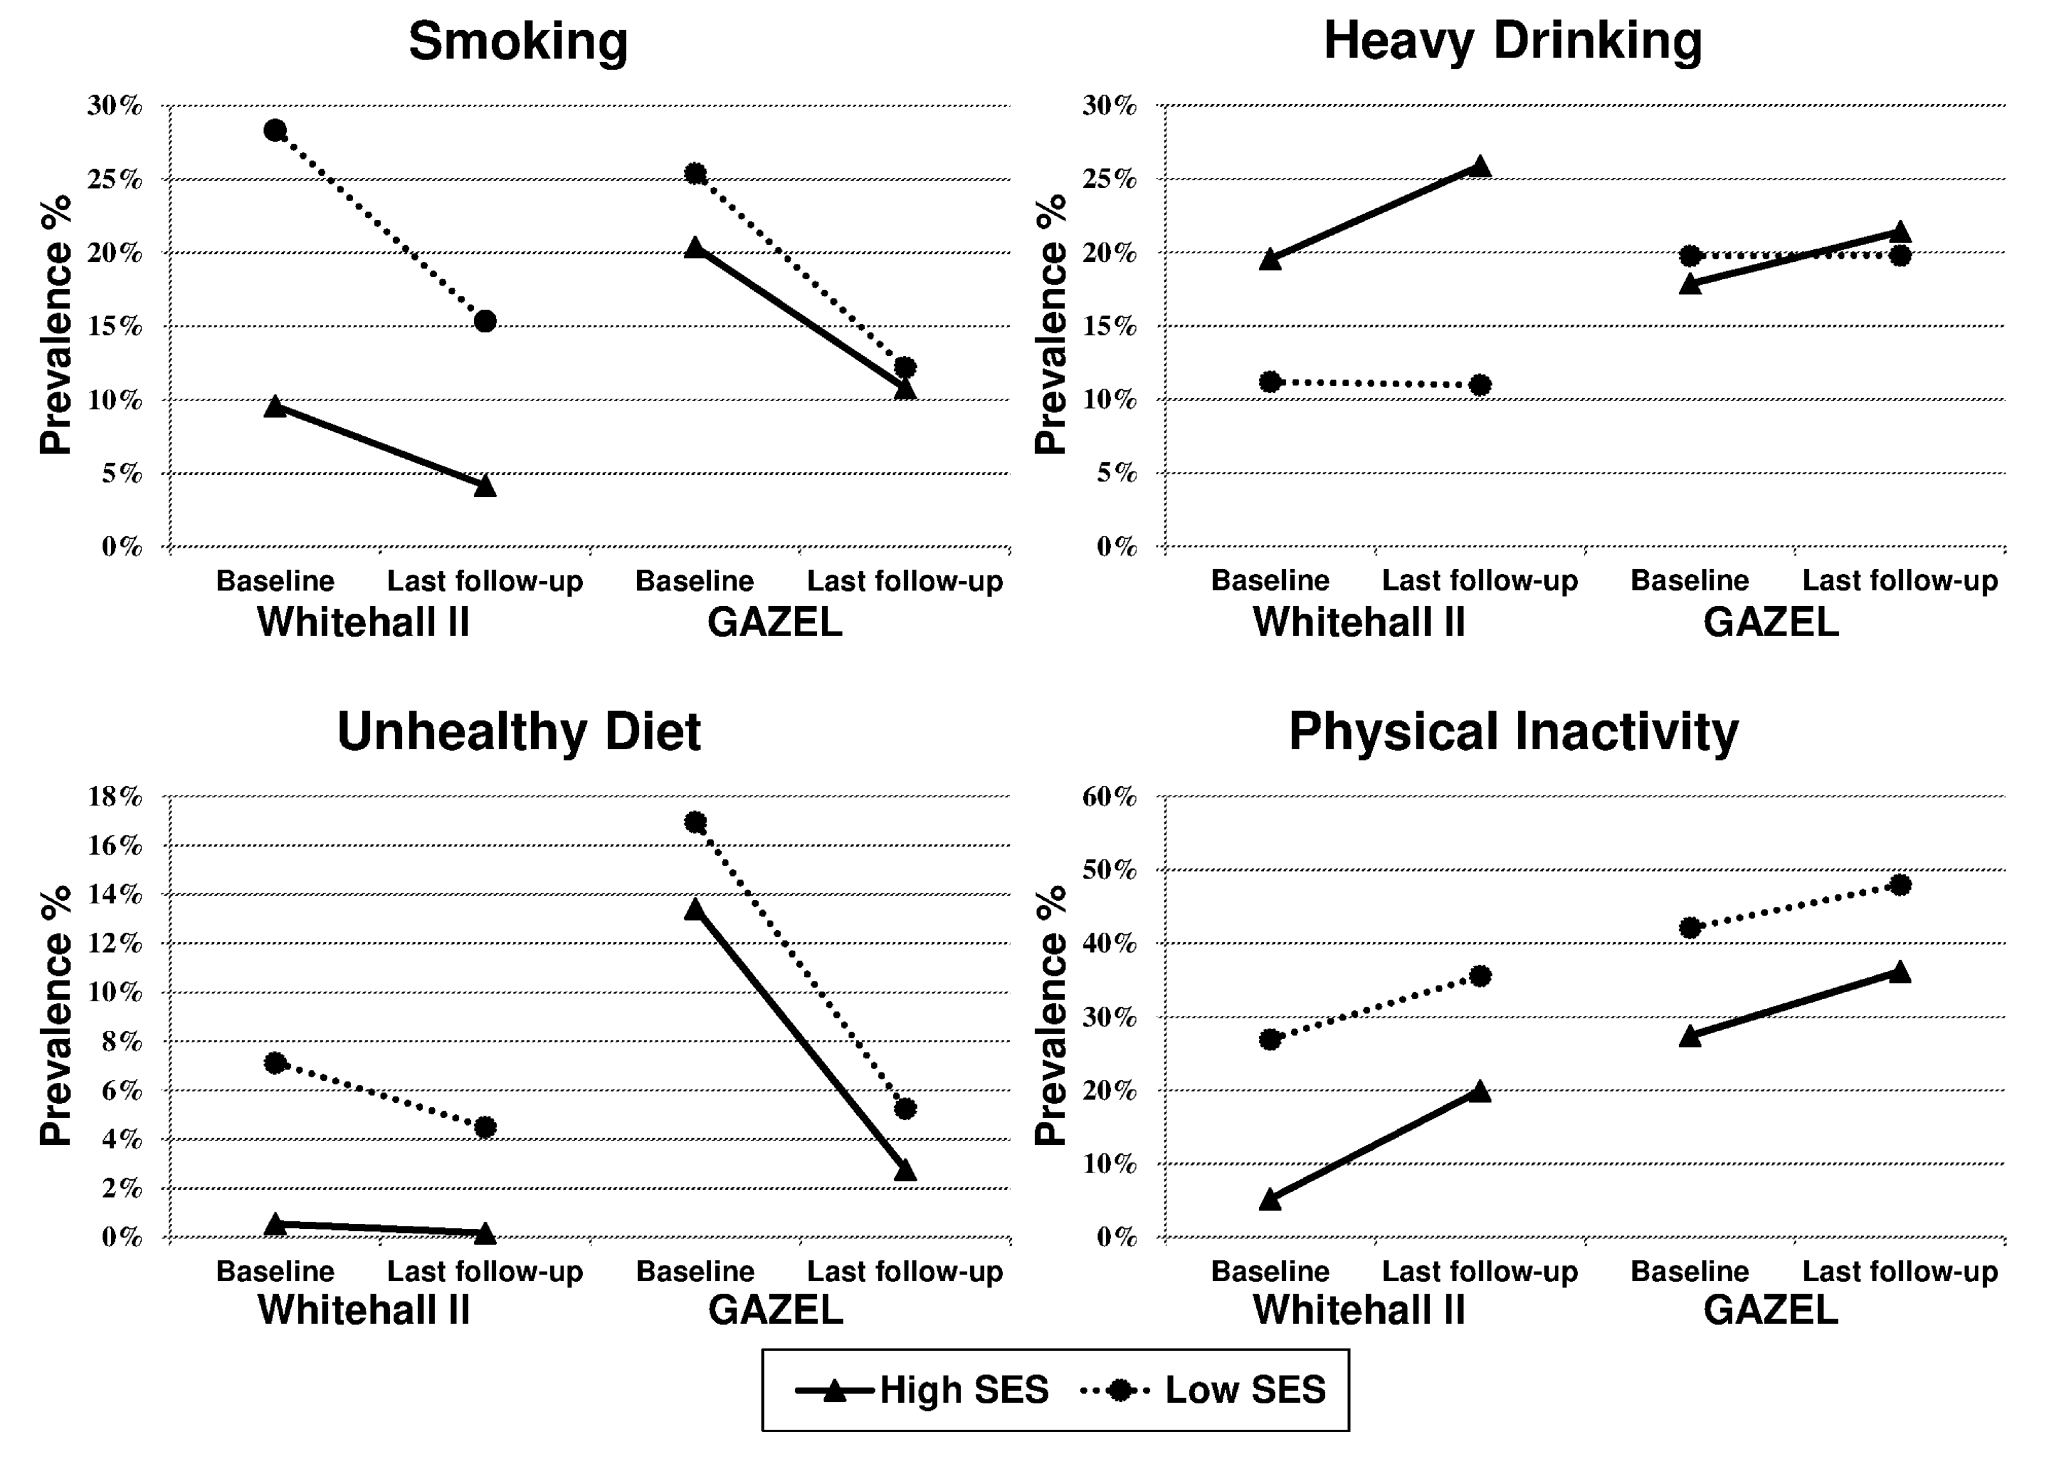 Age- and sex-adjusted prevalence of unhealthy behaviours at baseline and at last follow-up as a function of occupational position (high SES and low SES) in the British Whitehall II and the French GAZEL cohorts.